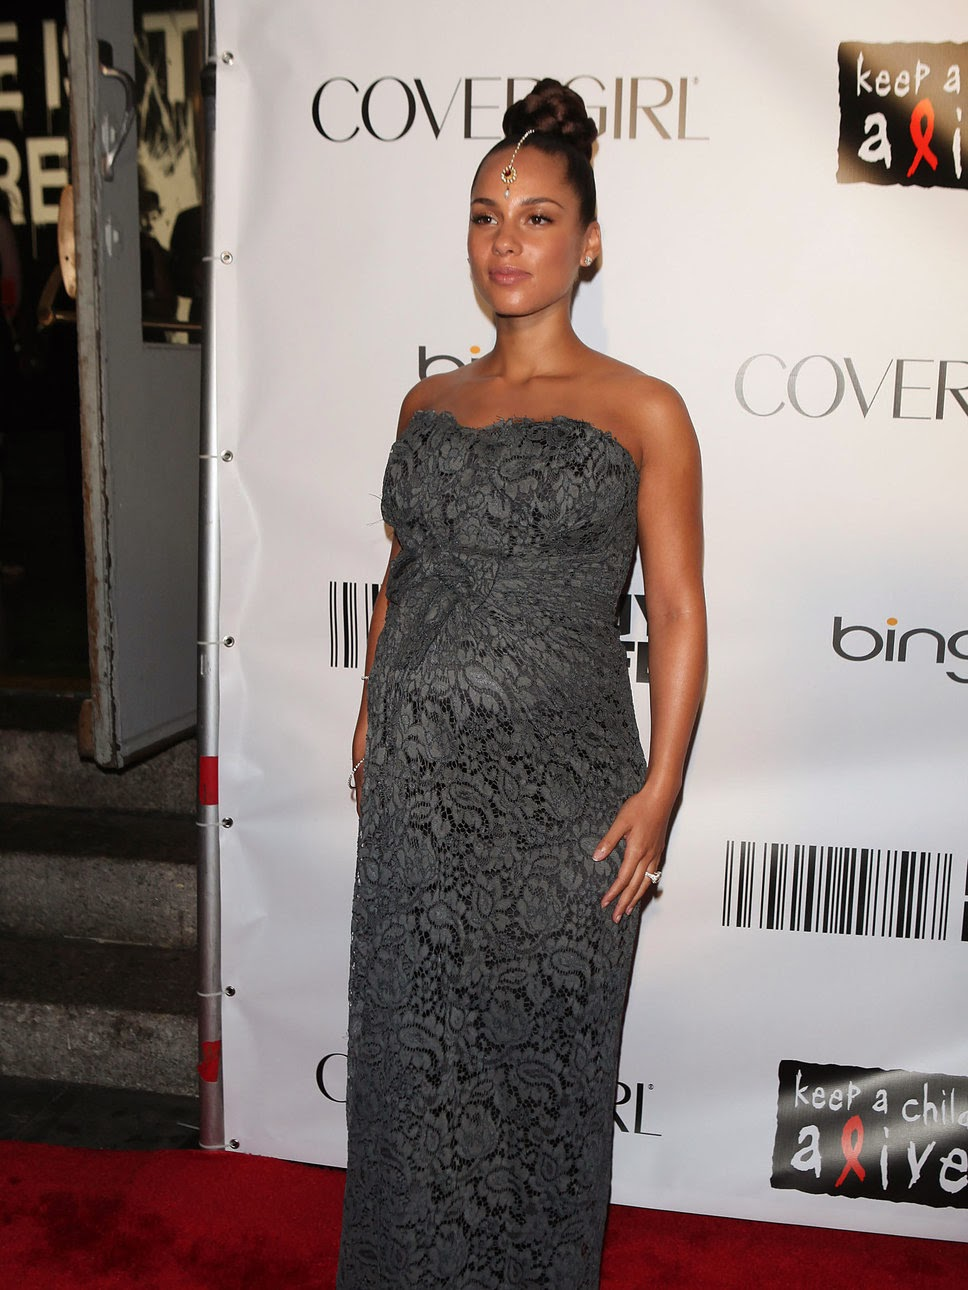 Alicia Keys is pregnant and preparing for the wedding 05/29/2010 56